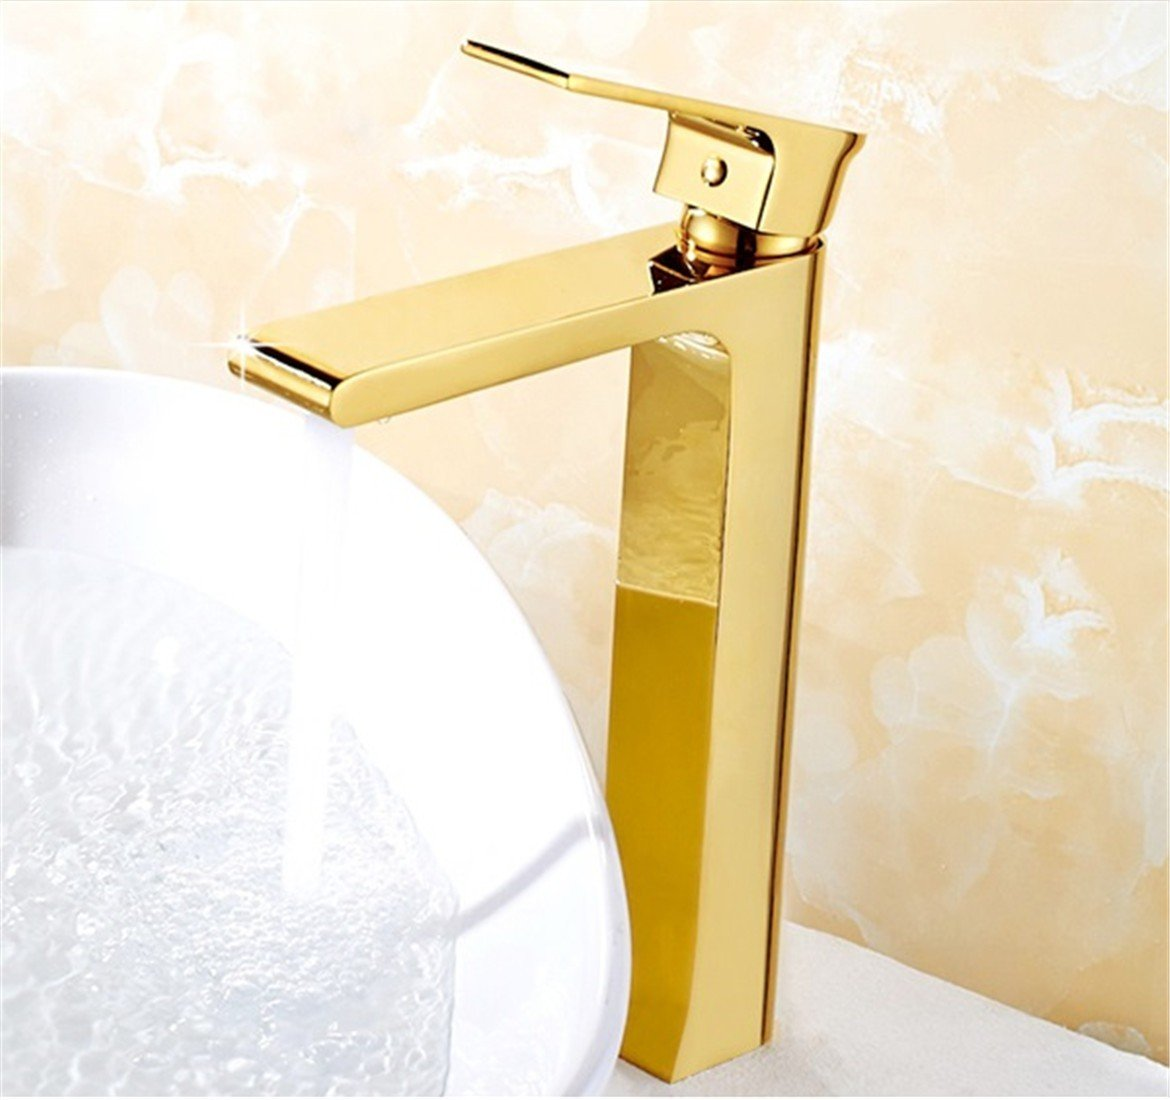 Fbict European-Style Copper Basin Faucet Long Water Outlet washbasin golden Faucet Square Baked White Paint, gold Heightening for Kitchen Bathroom Faucet Bid Tap